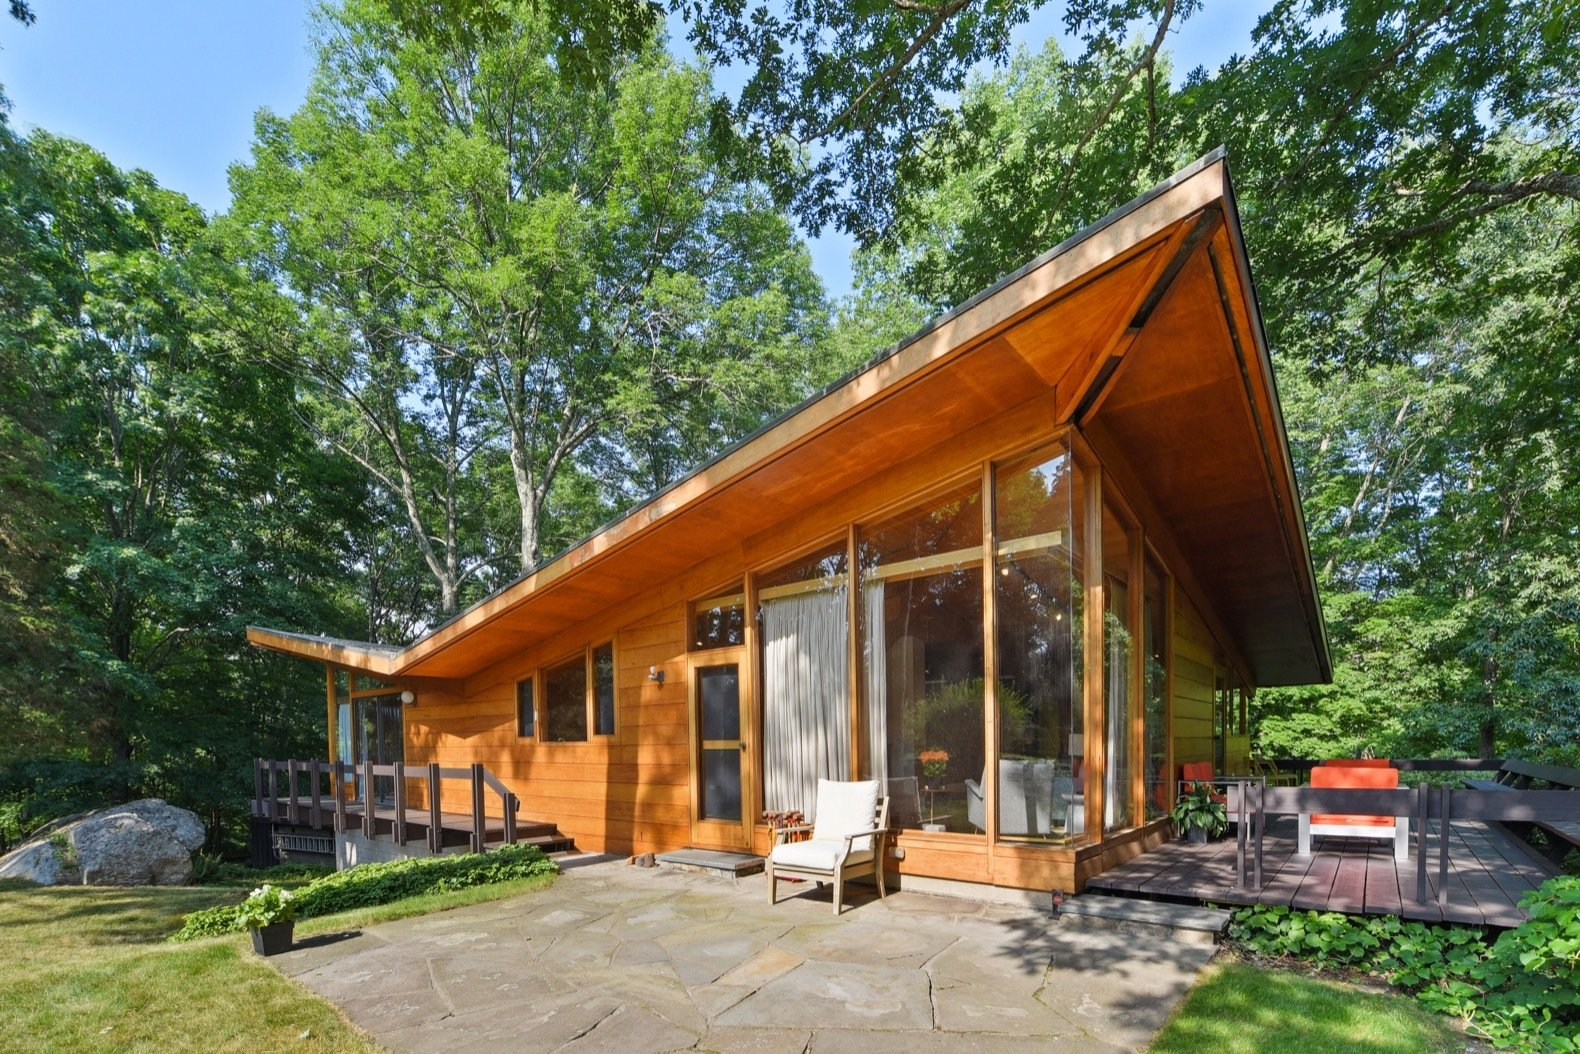 Exterior, House, Mid-Century, Wood, and Butterfly Overhanging roof eaves help protect the home from unwanted solar gain.  Best Exterior Butterfly Wood Photos from Moby's Luminous Midcentury in New York Asks $1.3M